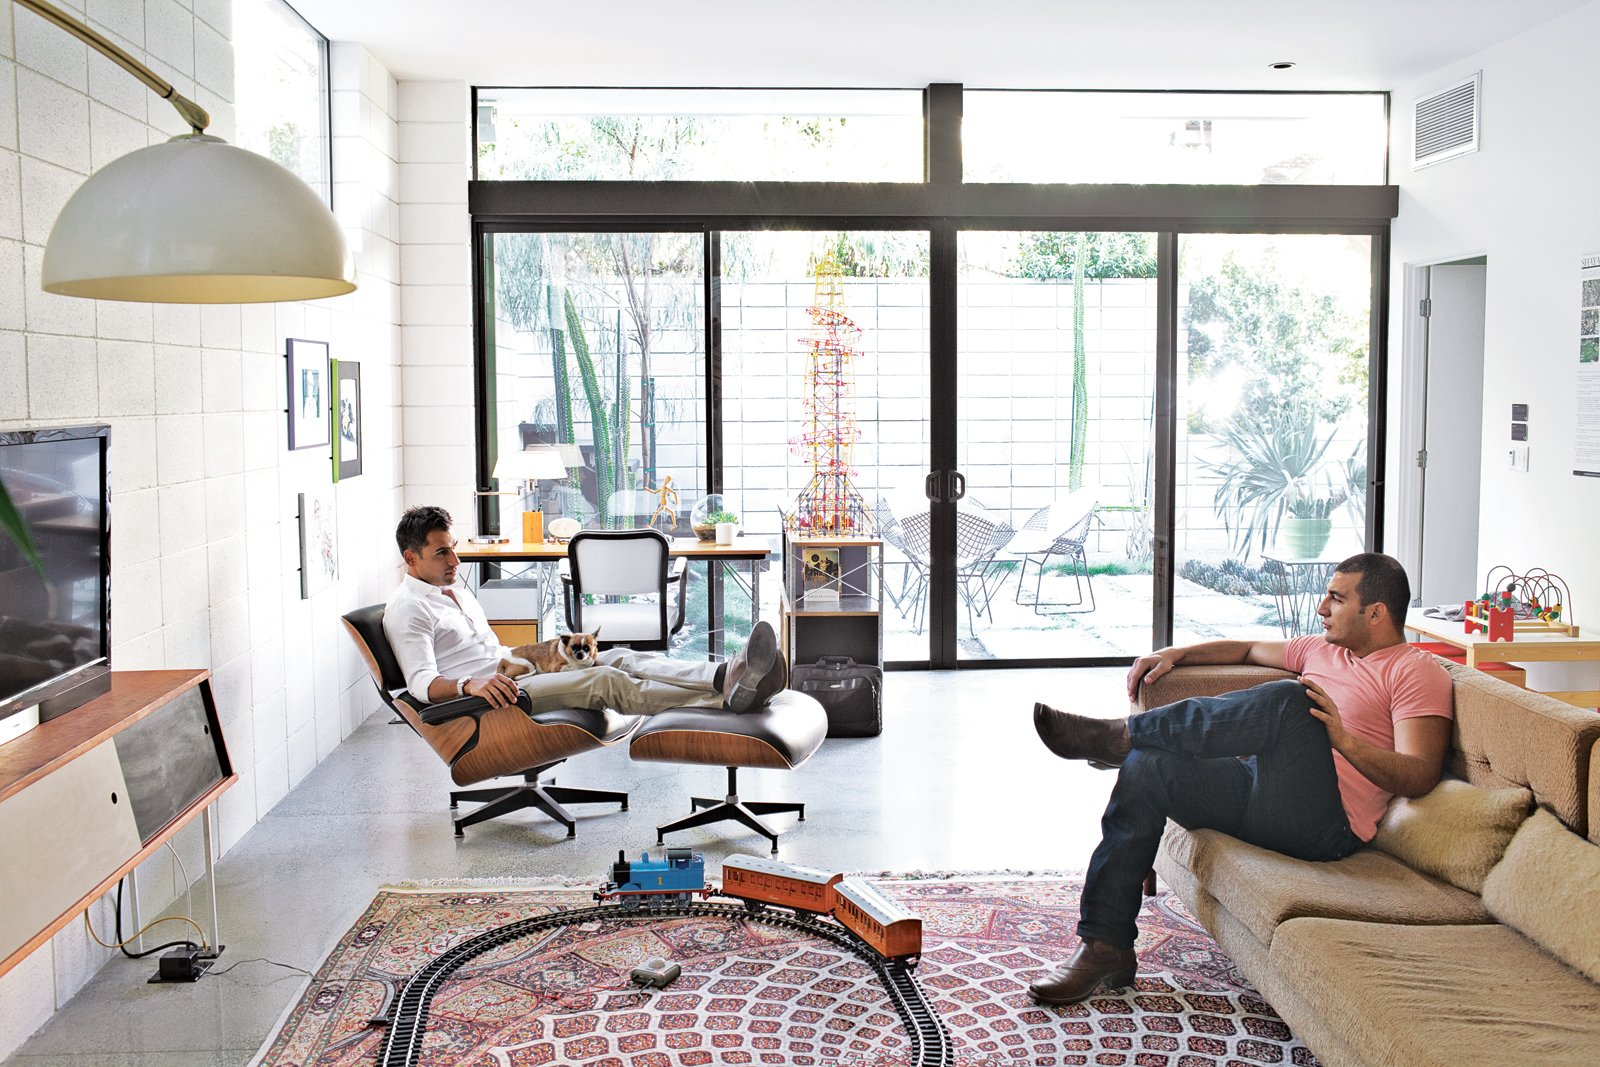 """Living Room, Recliner, Sofa, Floor Lighting, Concrete Floor, Console Tables, Ottomans, Rug Floor, Chair, Desk, and Recessed Lighting Brothers Nima and Soheil relax in the family room on an Eames lounge chair and a custom sofa they designed. """"Mid-century architecture draws the outdoor environment indoors,"""" says Soheil. """"There's a lot of natural light, a lot of ventilation.""""  Photo 3 of 54 in Eames Lounge Chair Porn from The First LEED Gold-Certified Family Home in San Diego"""